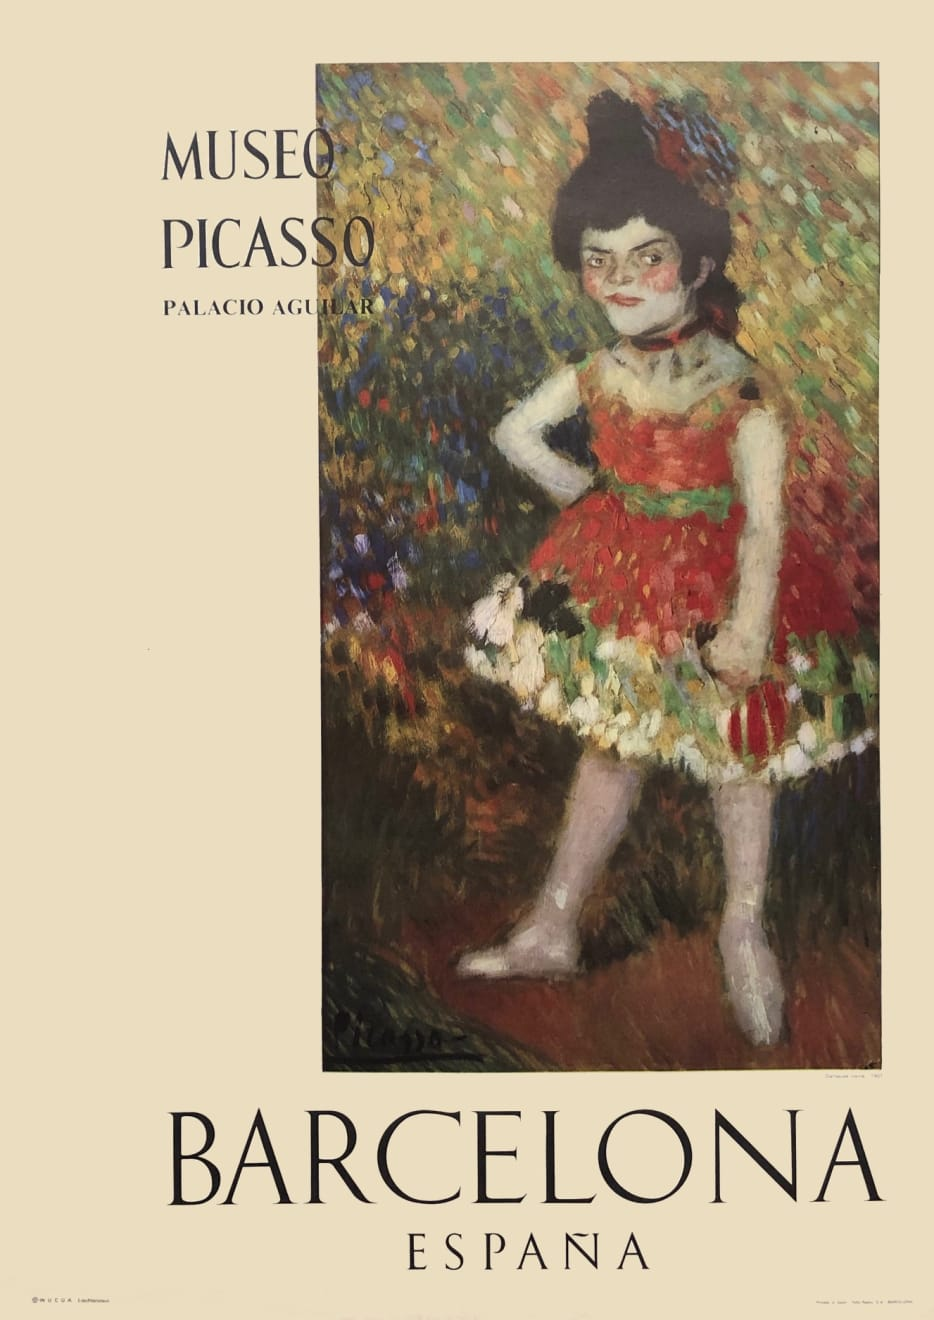 Pablo Picasso, Museo Picasso Barcelona Poster (Danseuse Naine), 1966